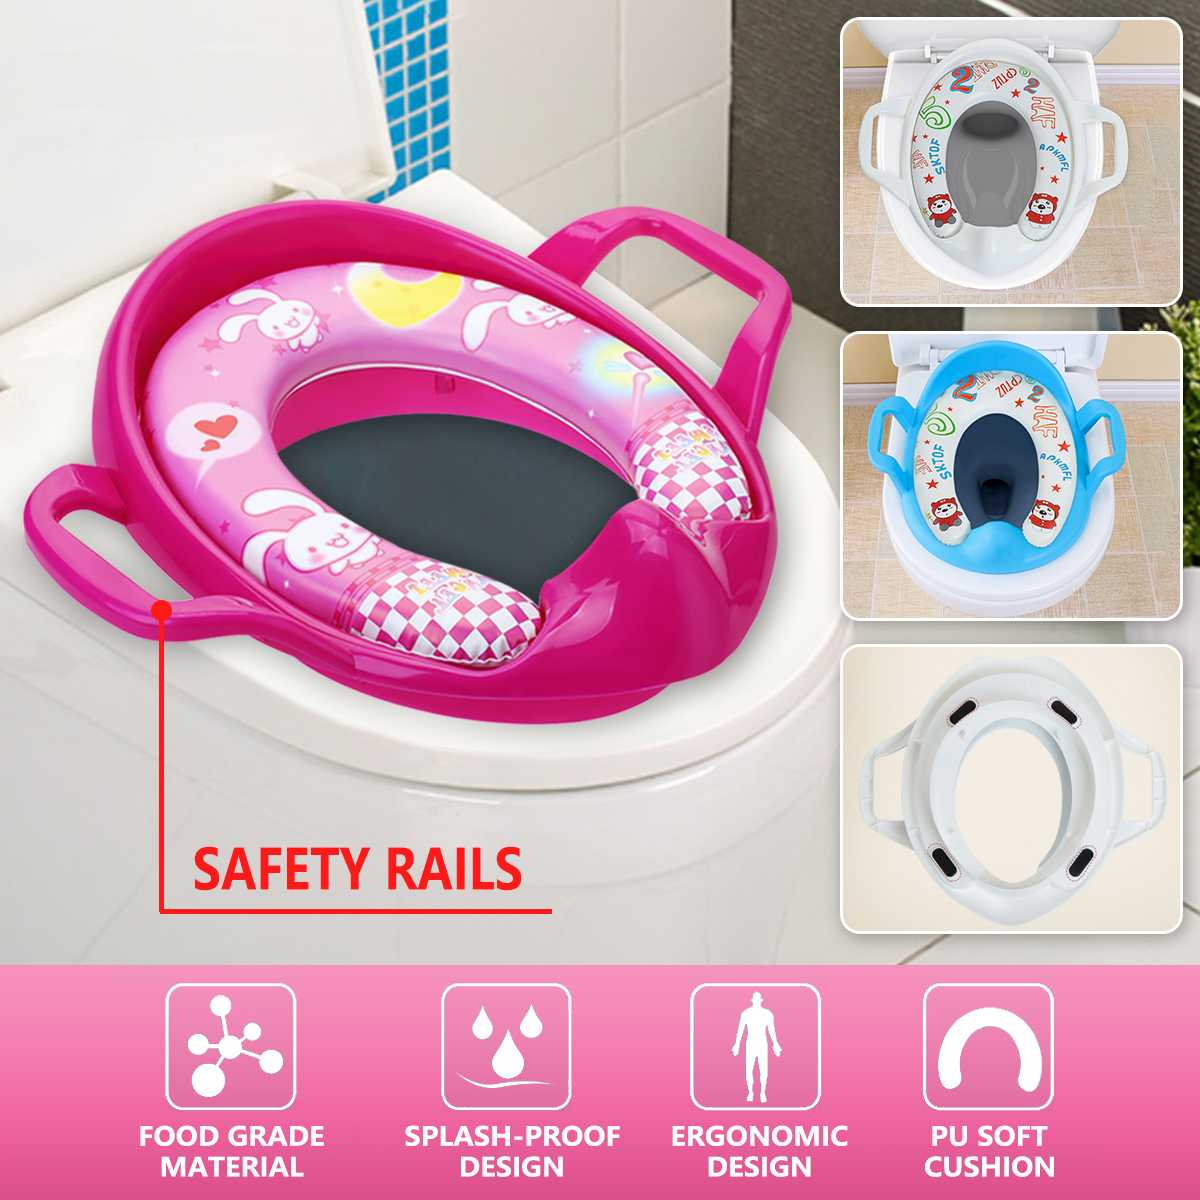 Child Toddler Kids Portable Safety Seats Soft Toilet Training Trainer Potty Seat Handles Urinal Cushion Pot Chair Pad Mat